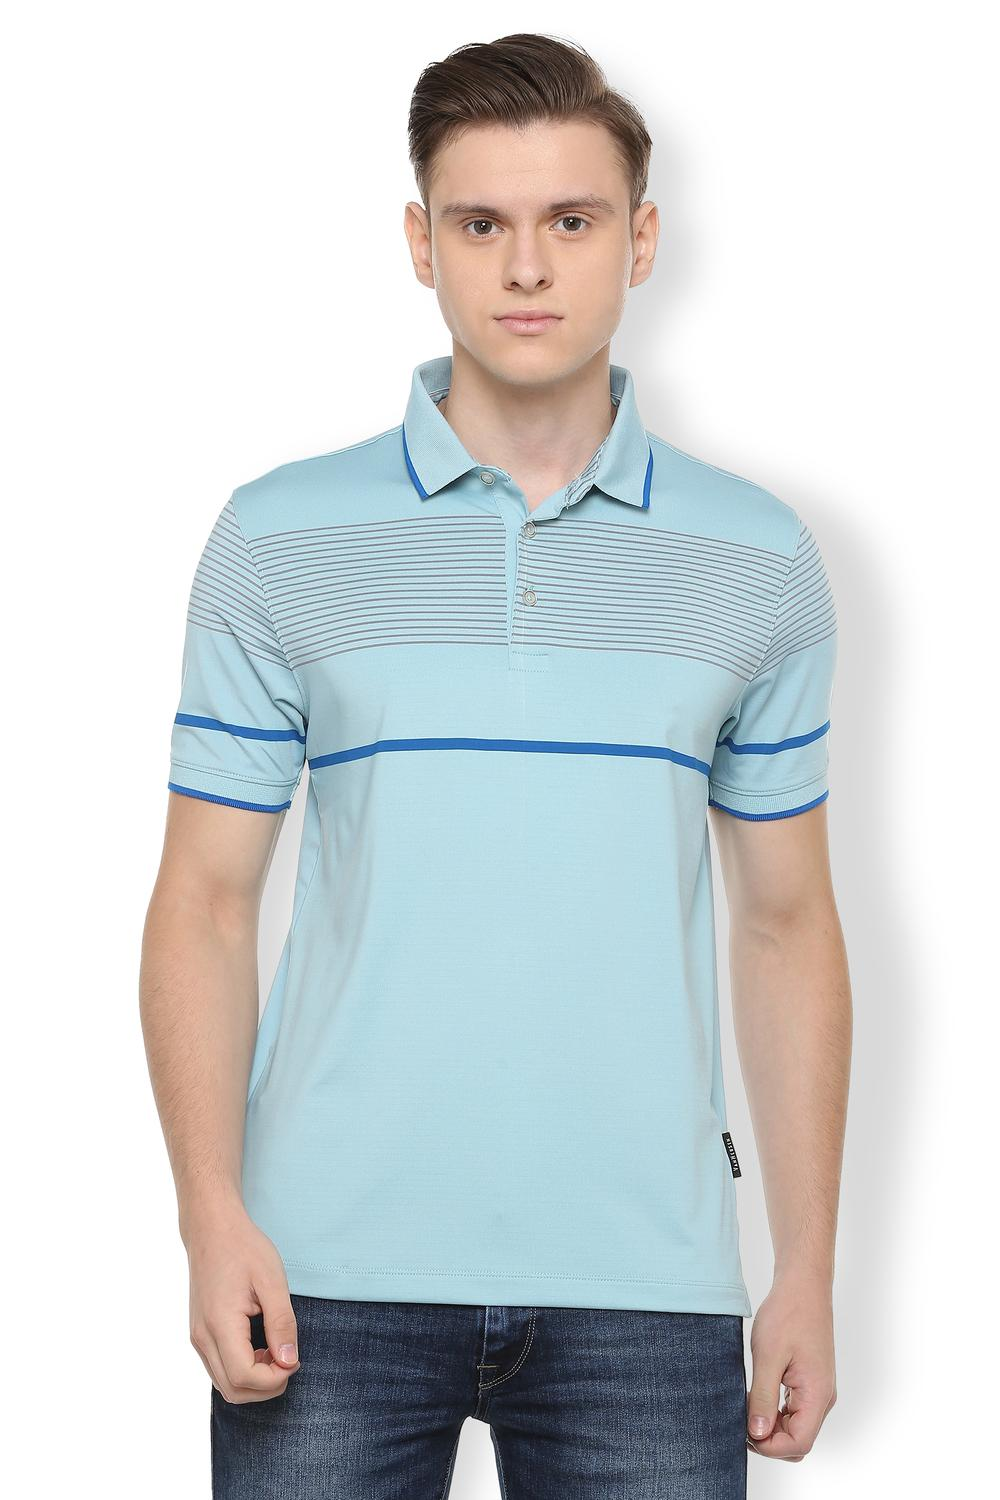 c7bb01d316 Van Heusen T-Shirts, Van Heusen Blue T Shirt for Men at Vanheusenindia.com